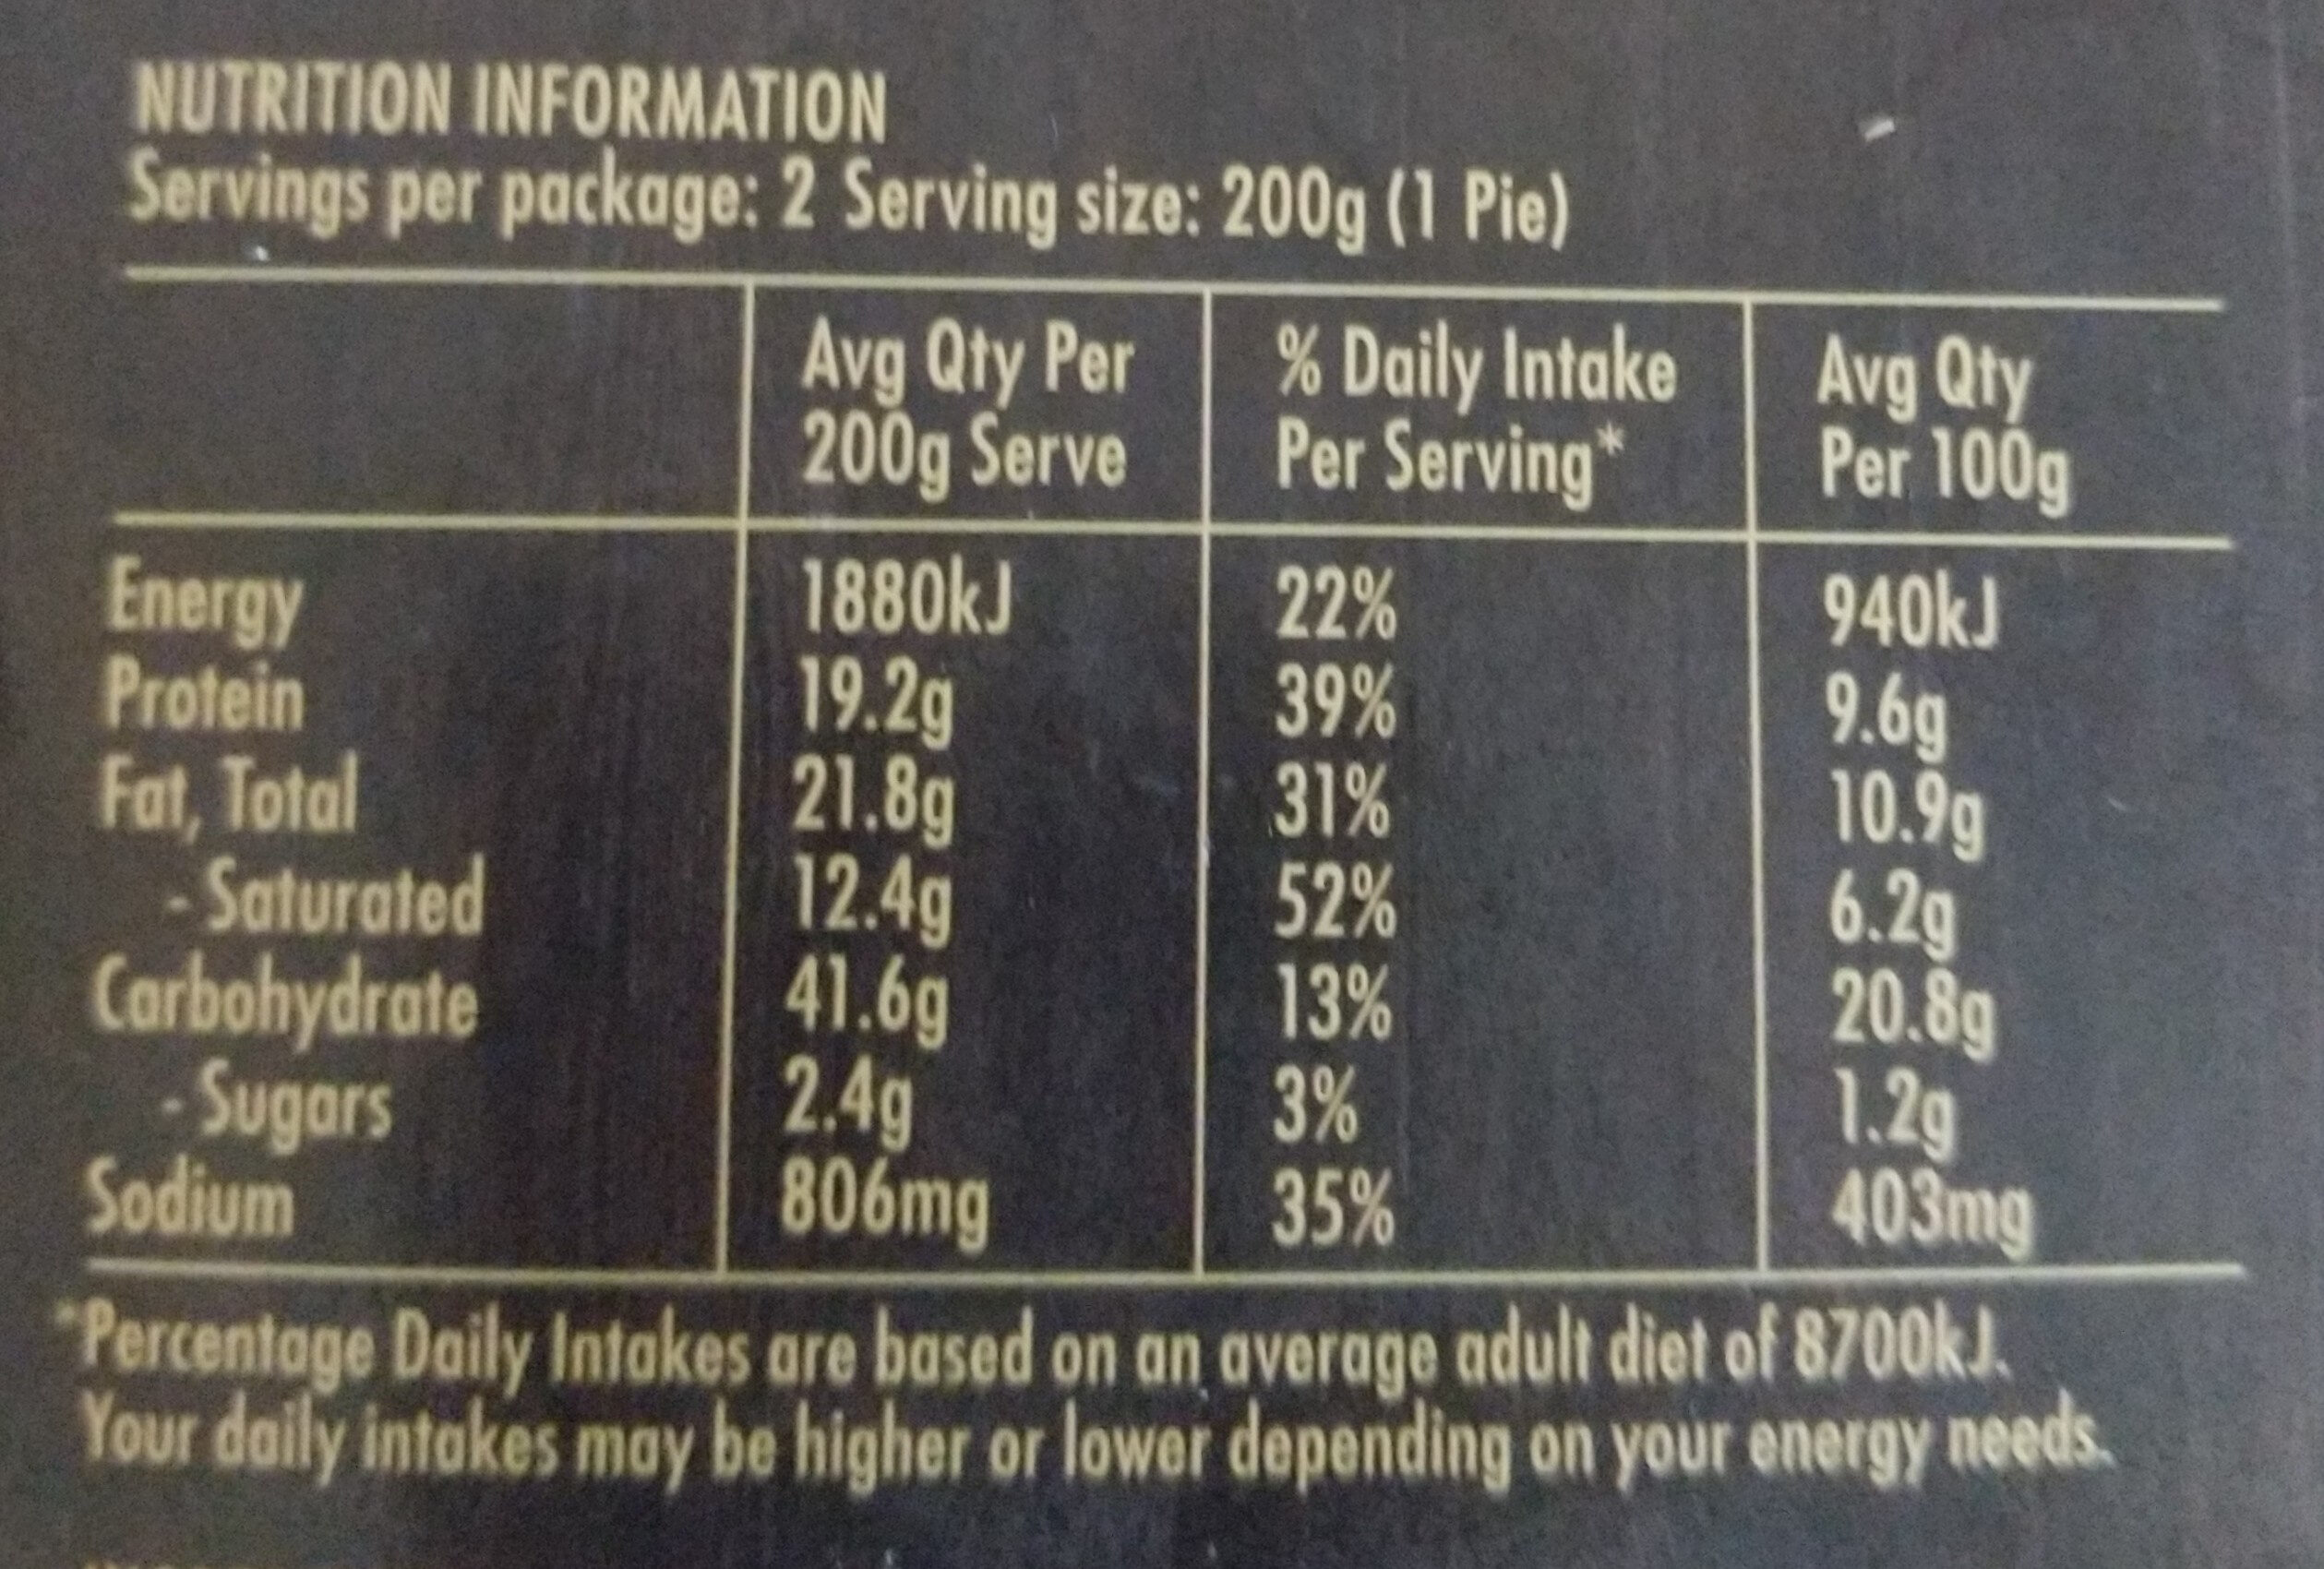 Chunky Sous Vide Beef & Button Mushroom Pie - Nutrition facts - en